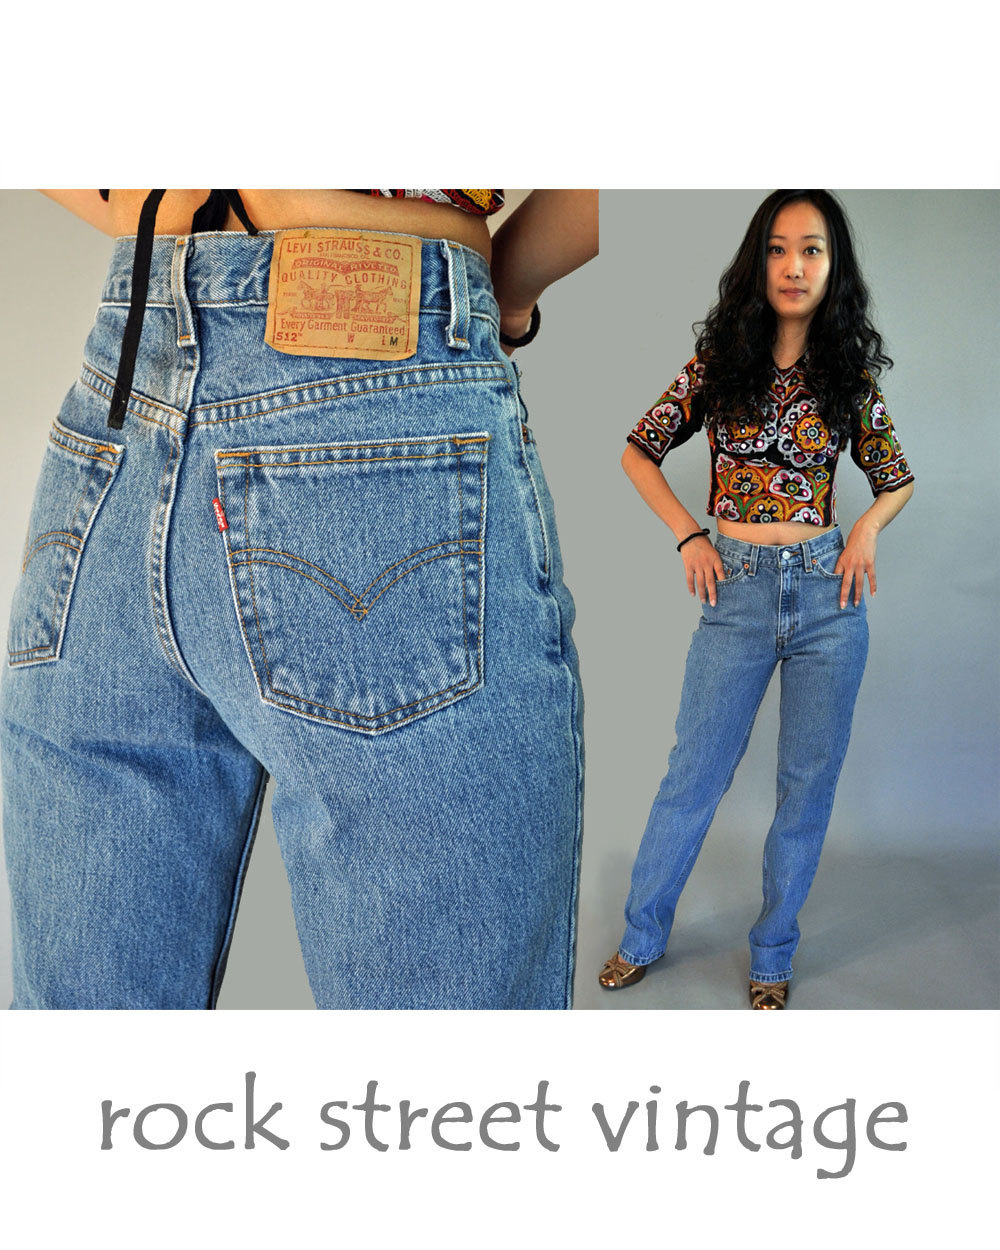 b9a35fca Vintage Levis 80s Levi 512 High Waist Jeans / Womens Levi 512s Denim Blue  Jeans / Slim Fit Straight Leg High Waisted Levi Jeans 28 Waist